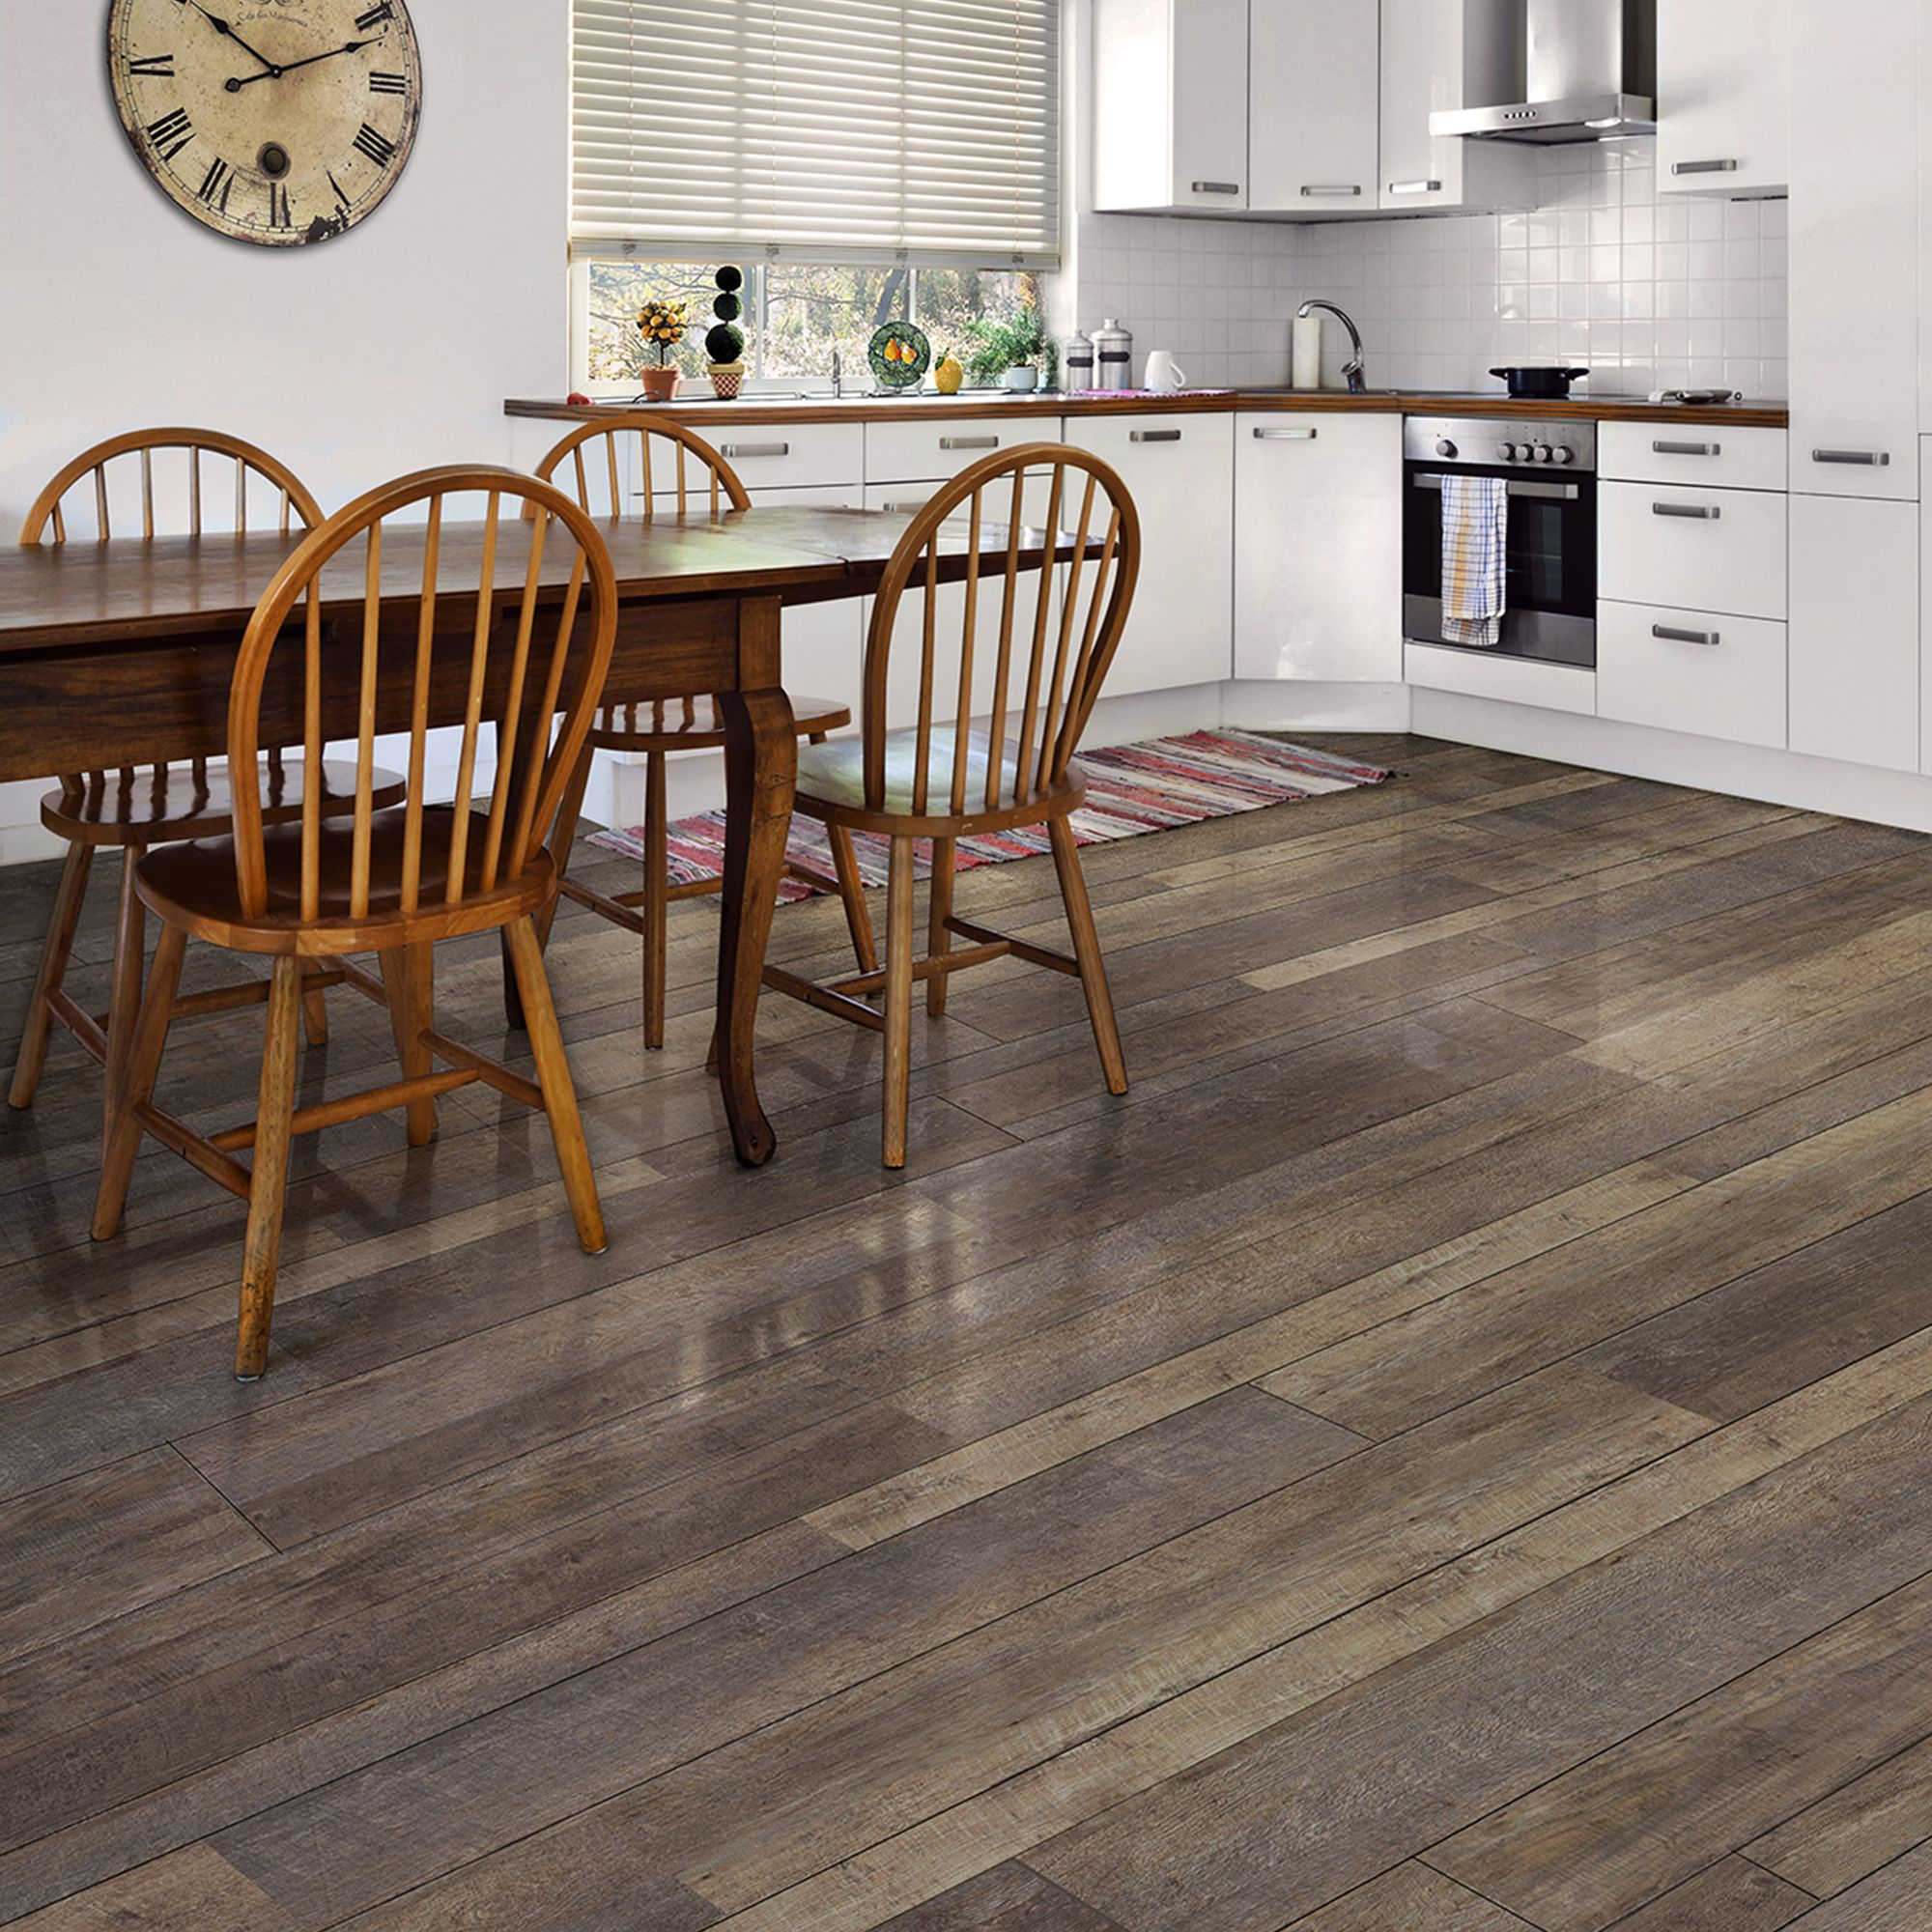 Introducing The Newest Innovation In Vinyl Flooring! Allure ISOCORE  Features A Highly Engineered Closed